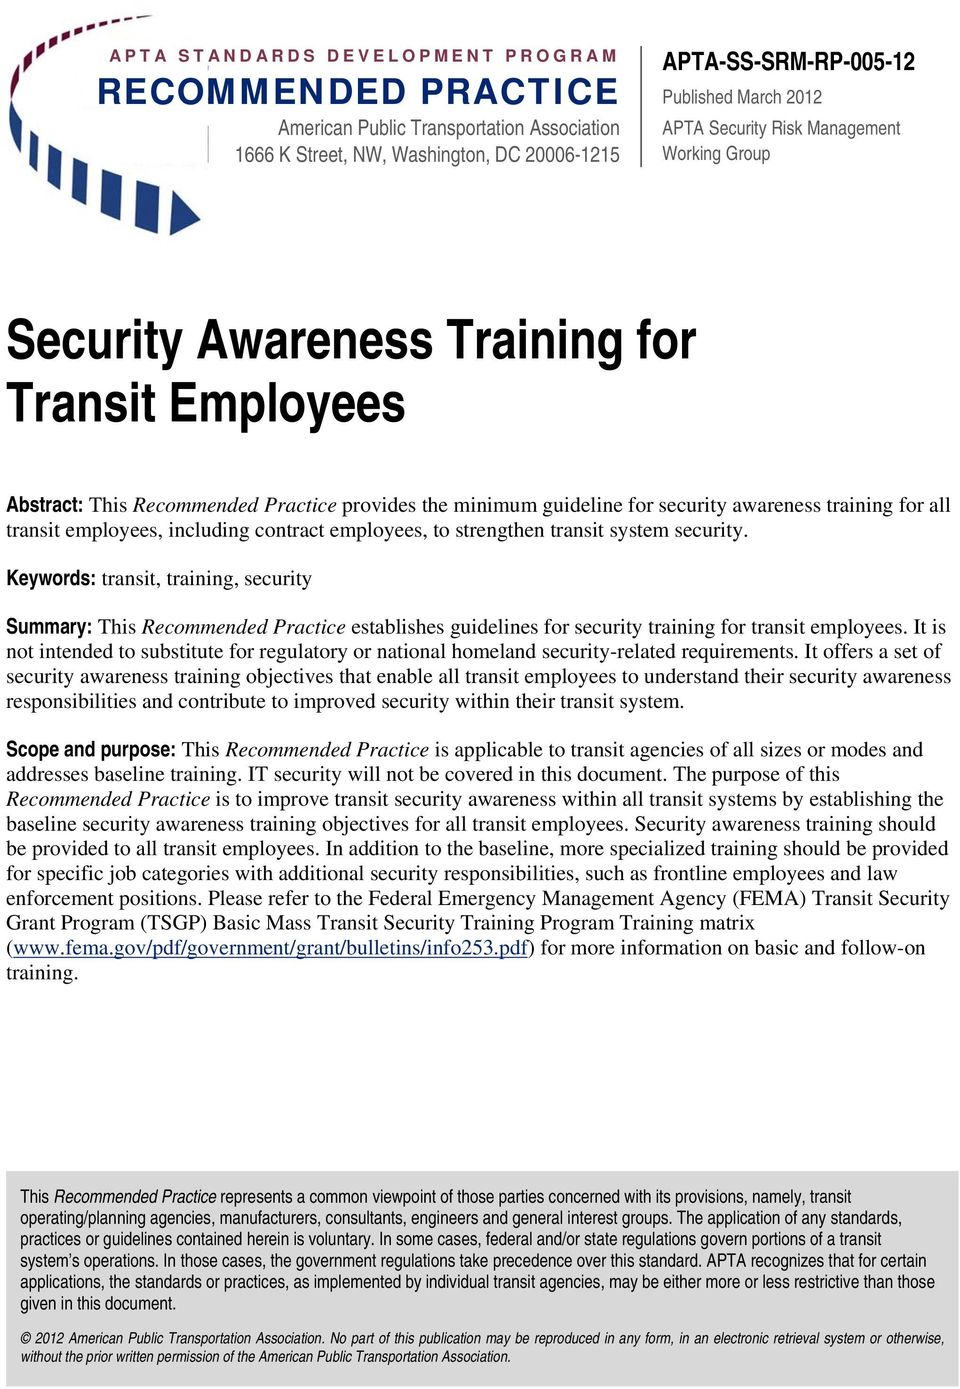 transit employees, including contract employees, to strengthen transit system security.